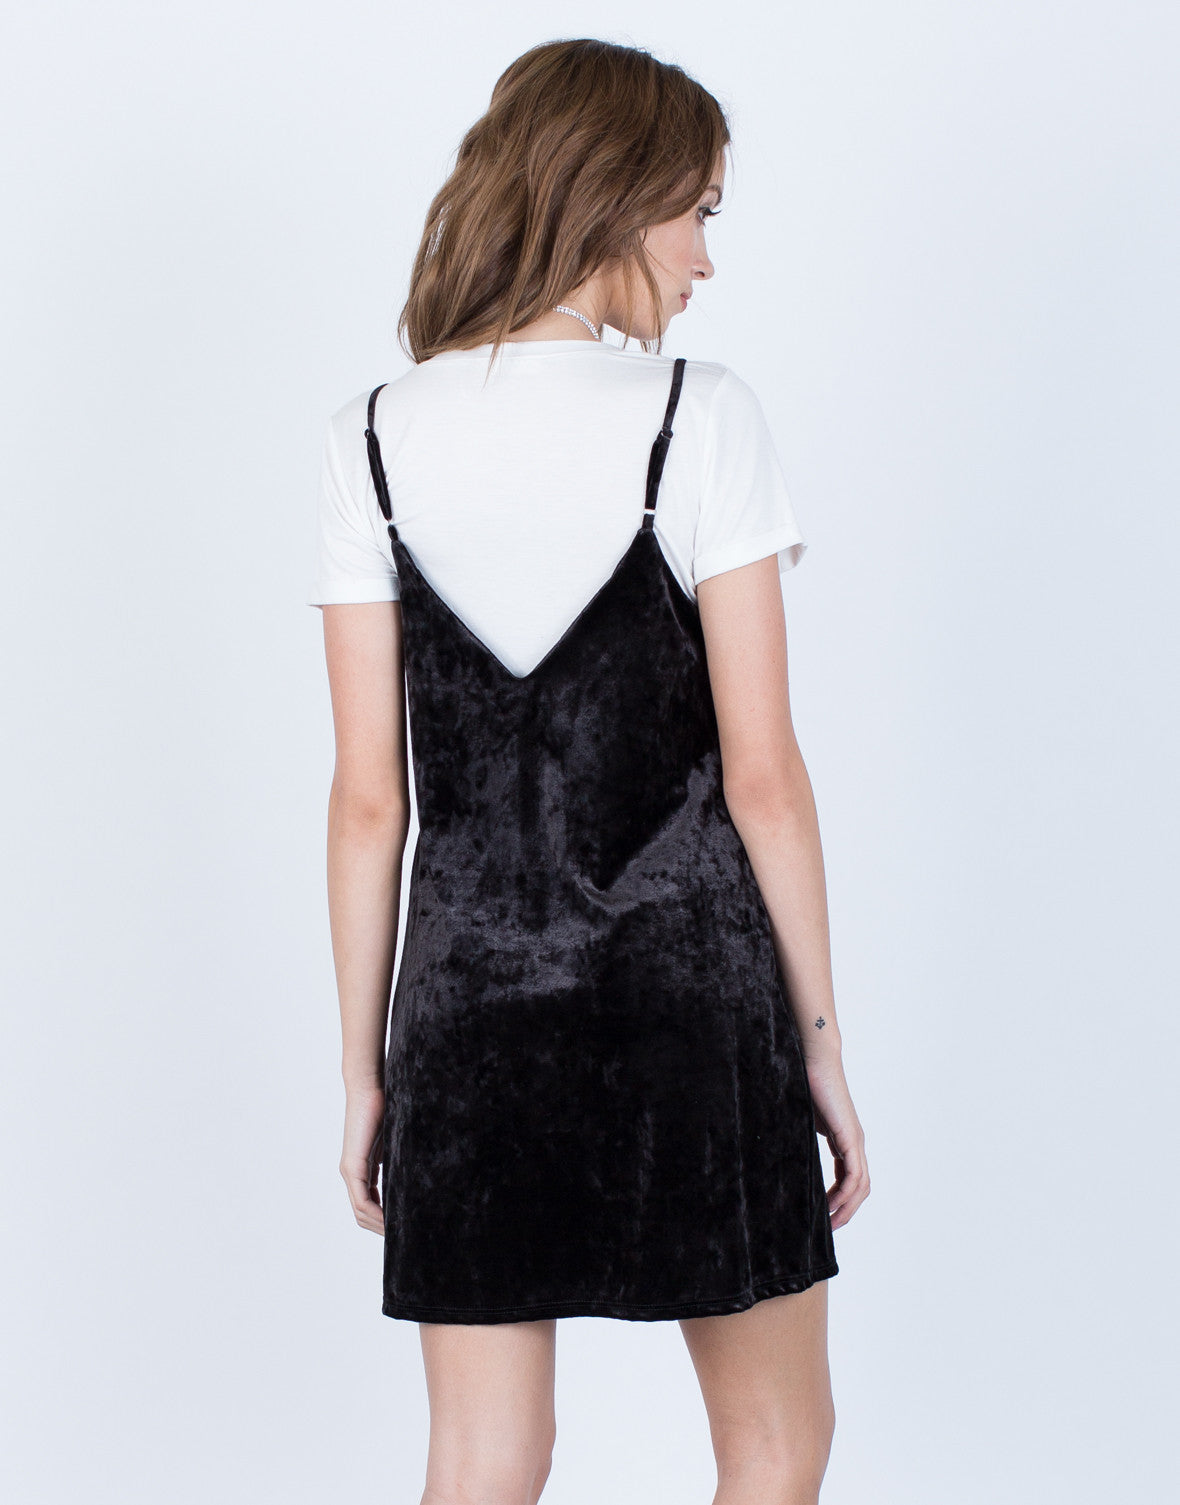 Back View of Crushed in Velvet Slip Dress